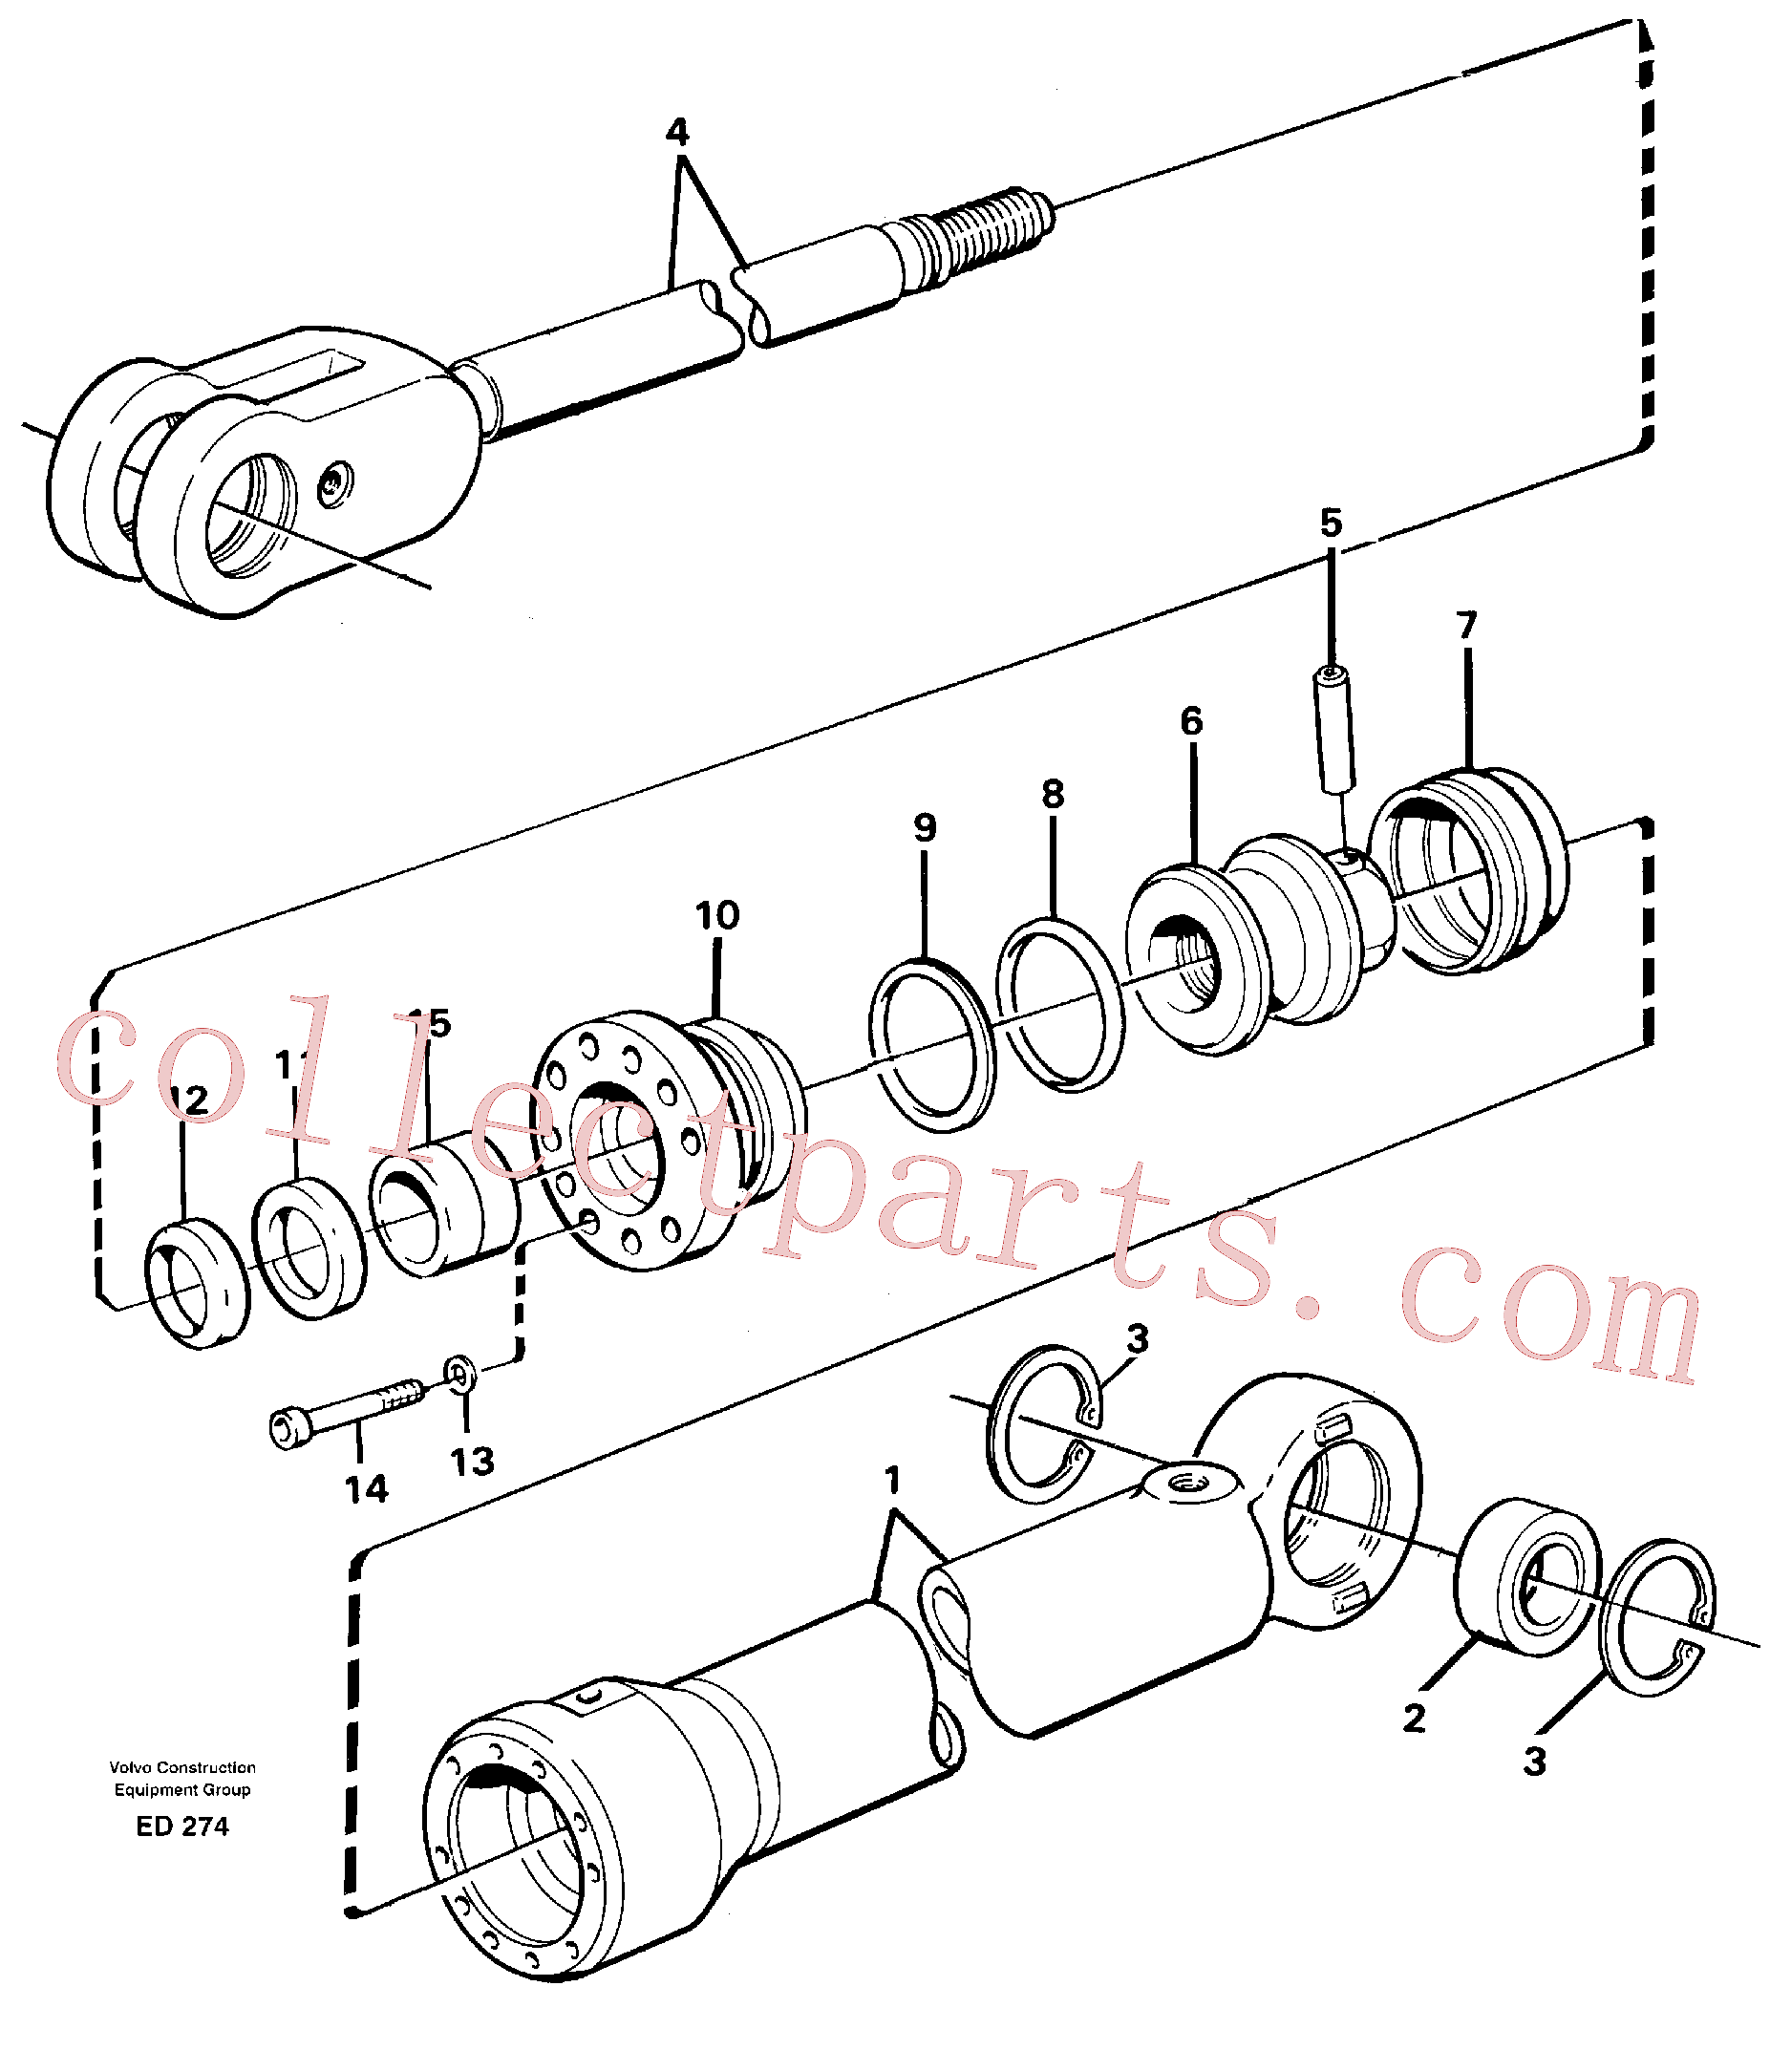 VOE11704196 for Volvo Hydraulic cylinder(ED274 assembly)